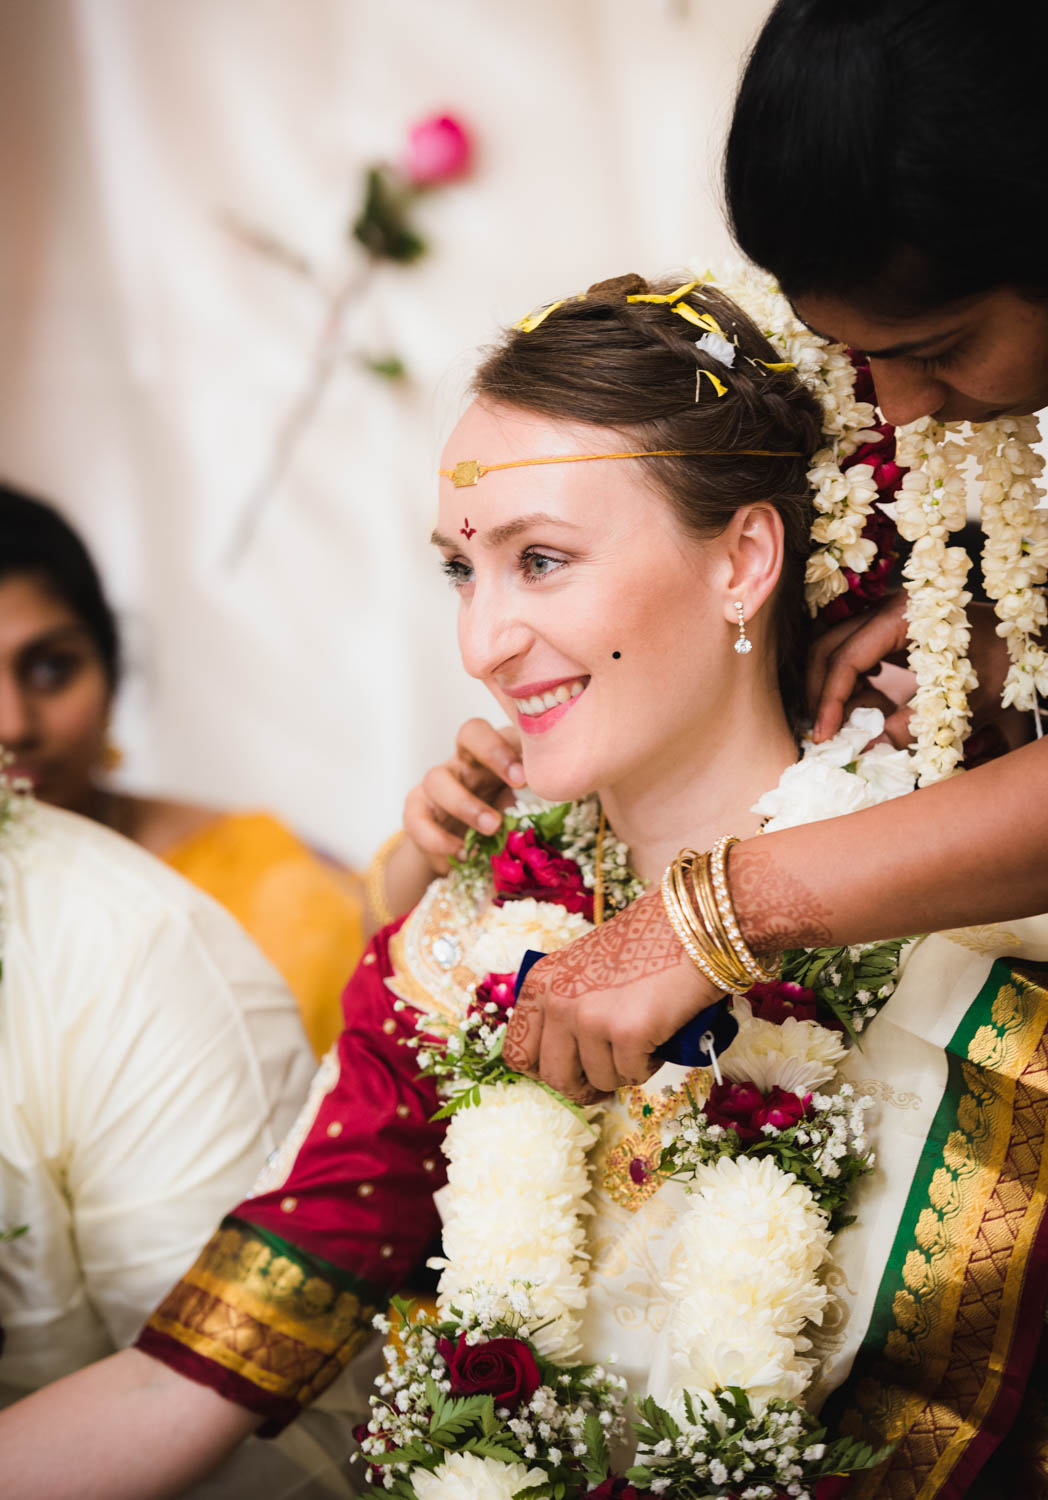 ecaterina-chandu-indian-wedding24.jpg